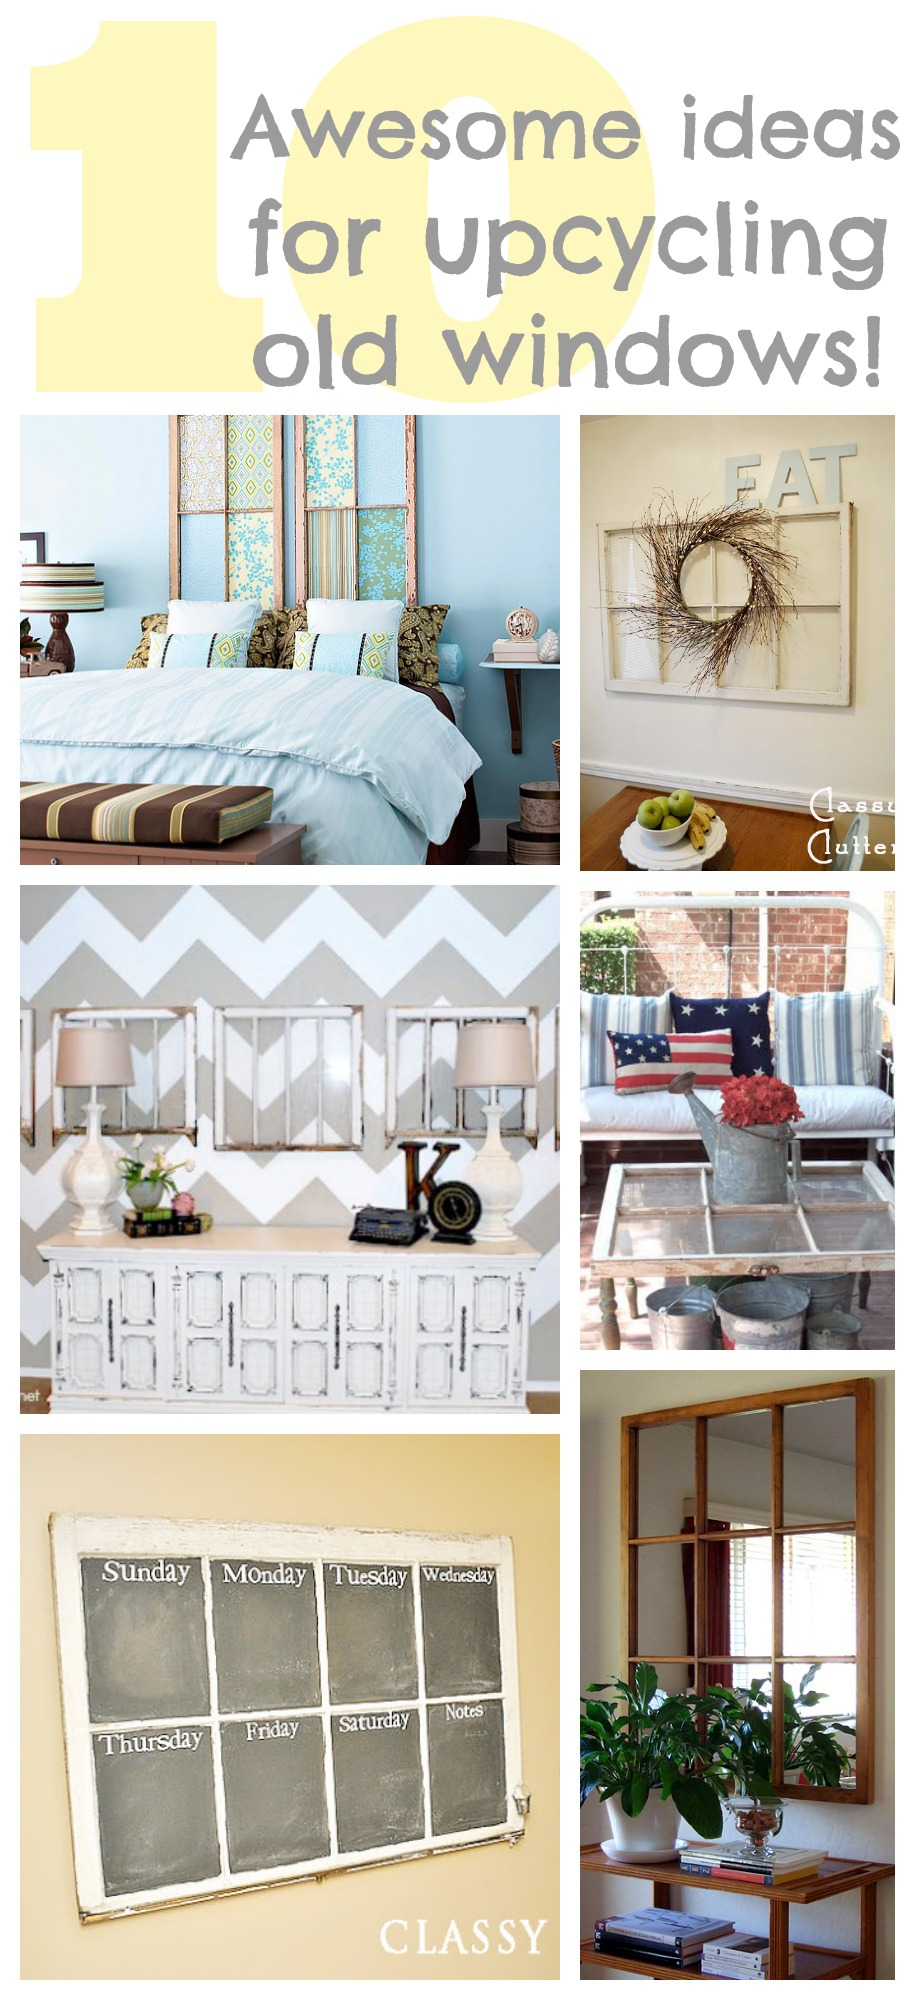 10 Ideas For Upcycling Old Windows Classy Clutter